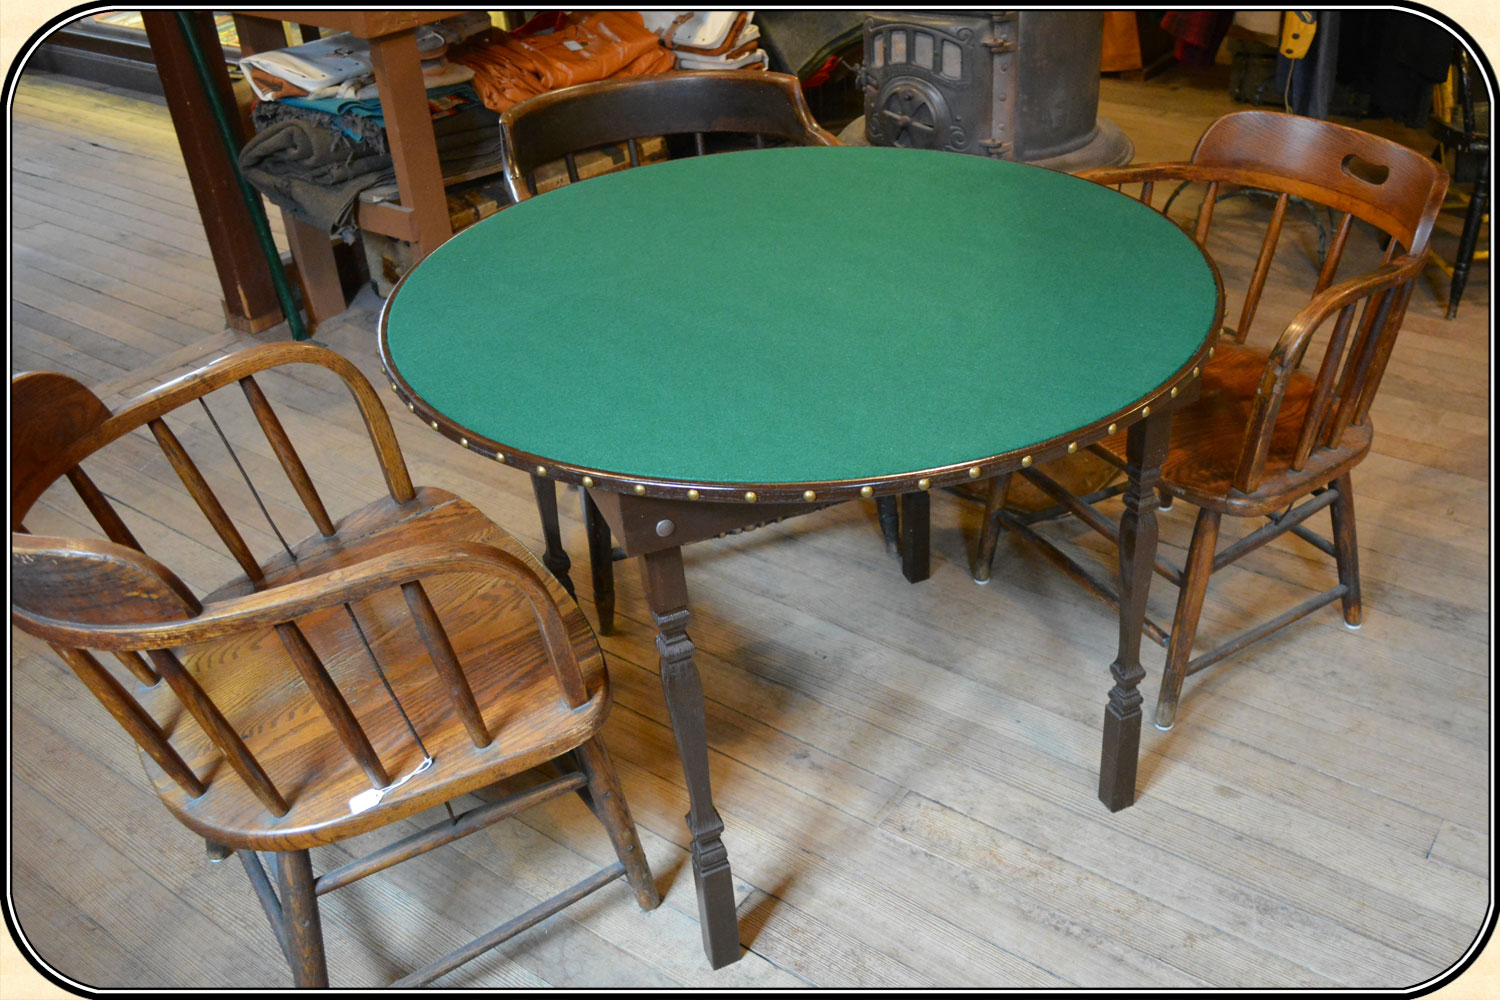 Poker table chairs - Old West Gambler S Poker Table Made Exclusivly For River Junction Trade Co Click To Enlarge Image